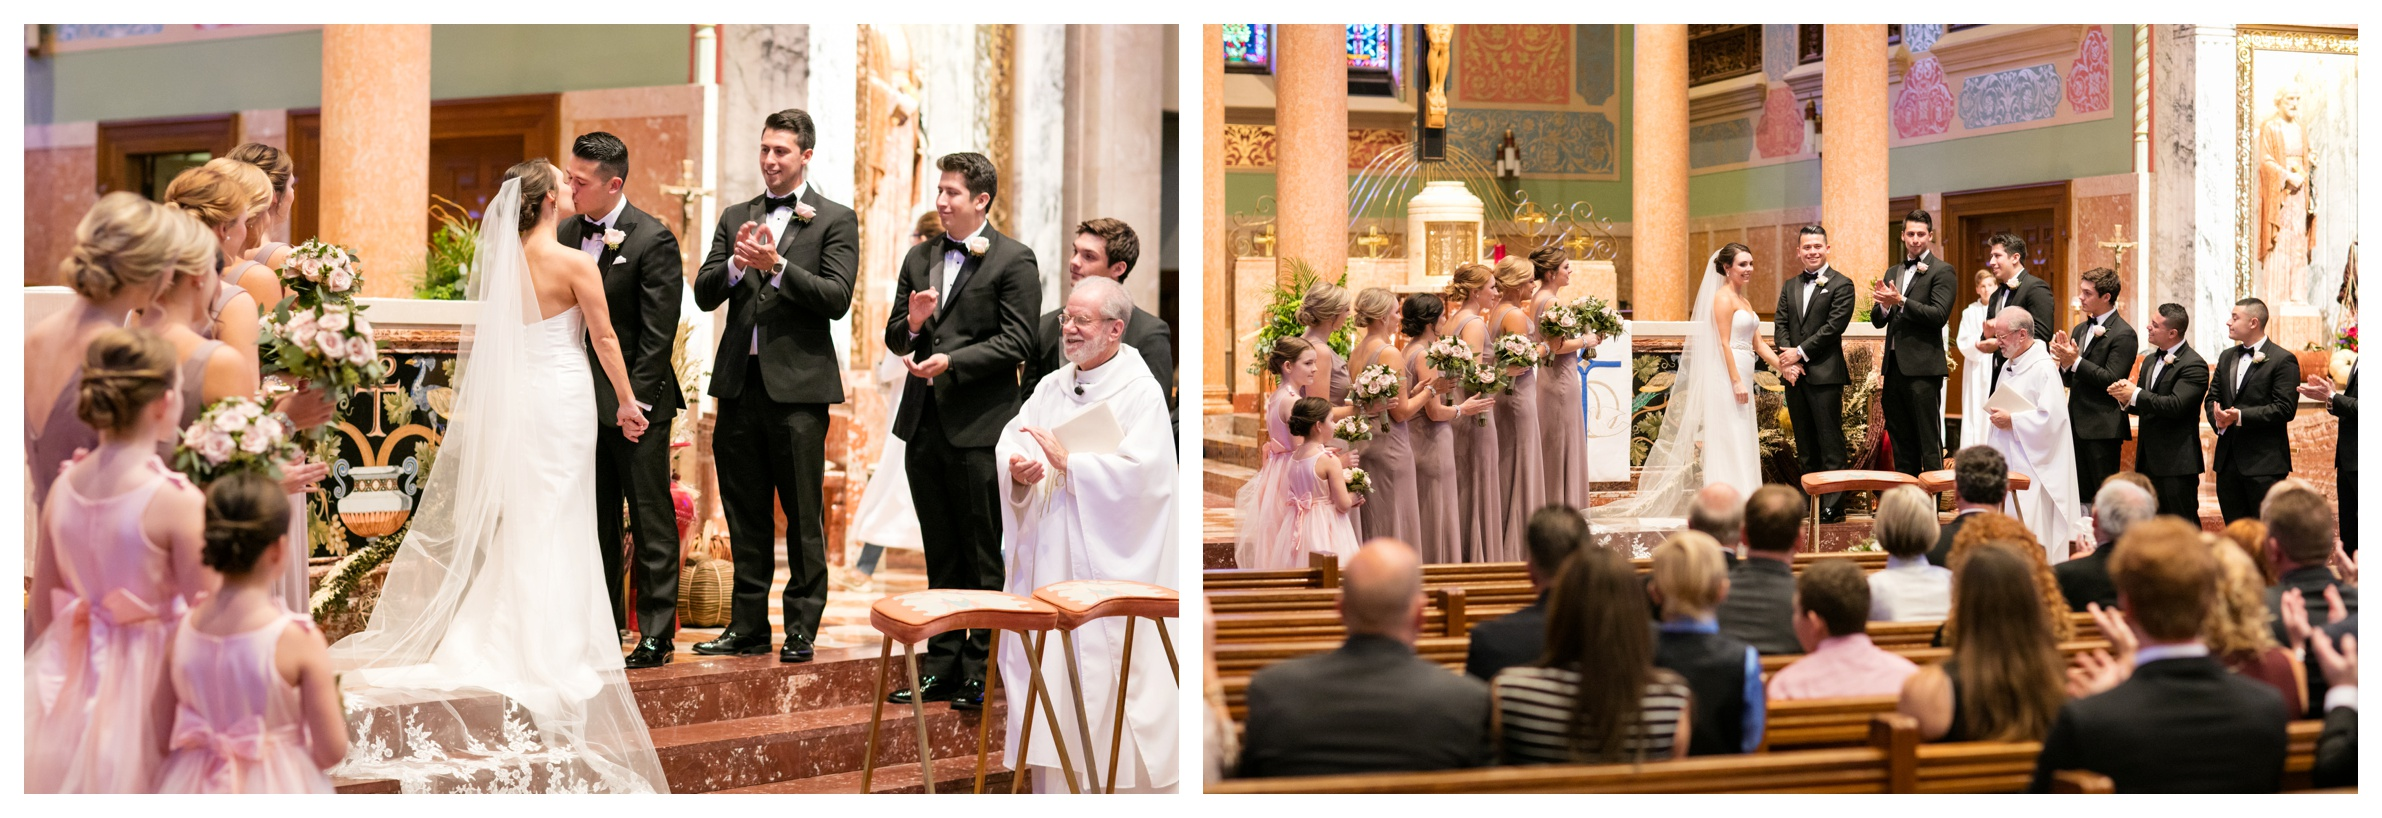 chicago-catholic-wedding